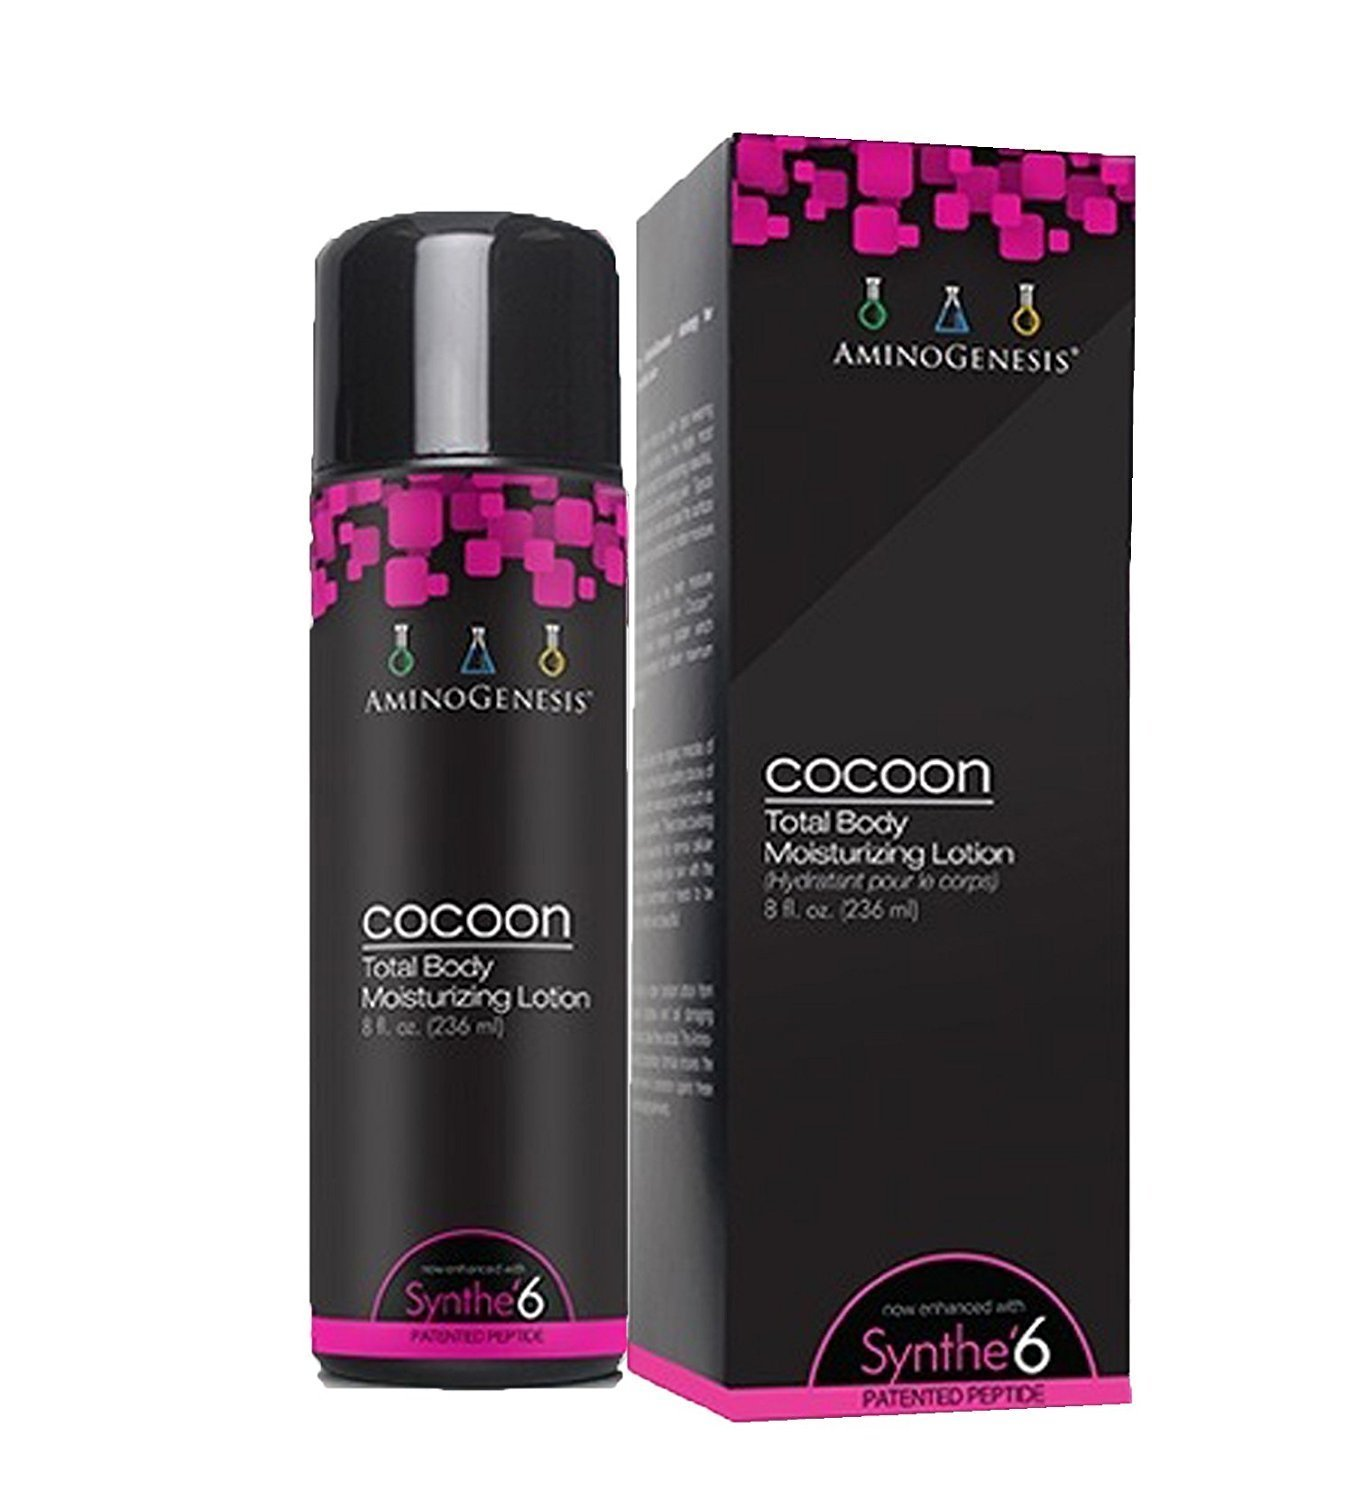 Cocoon: For All Over Body Use